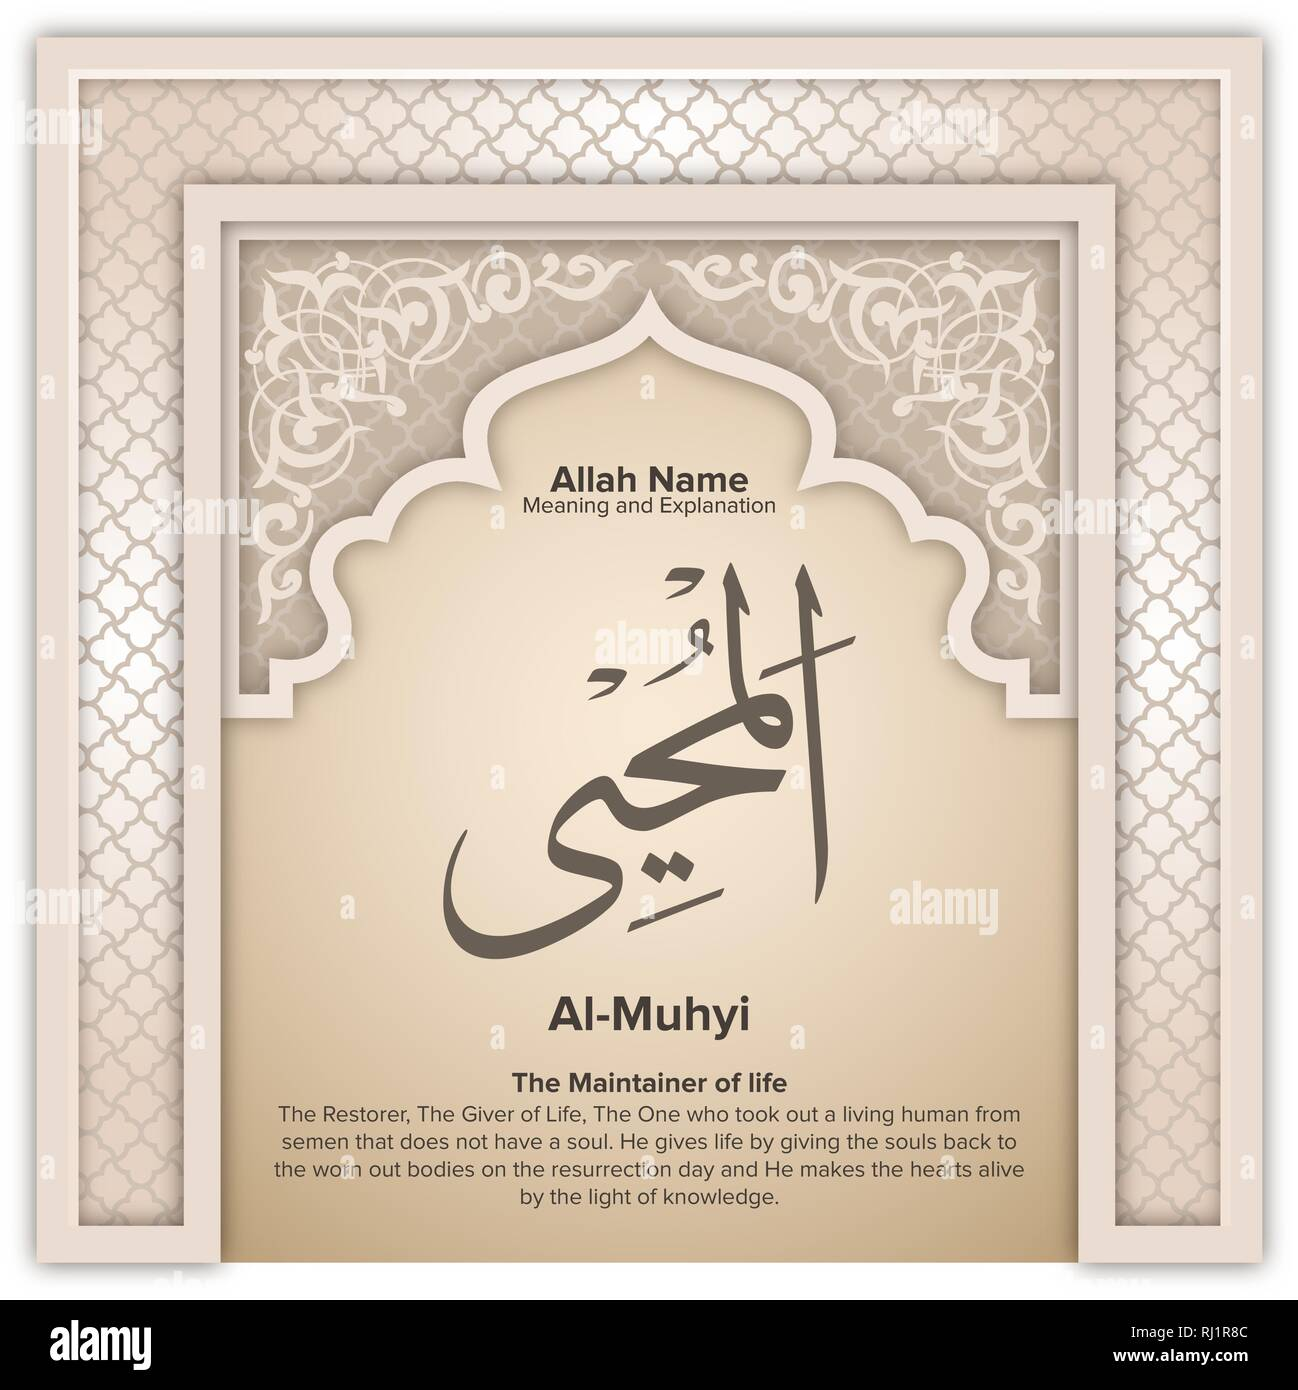 https www alamy com 99 names of allah with meaning and explanation image234838812 html